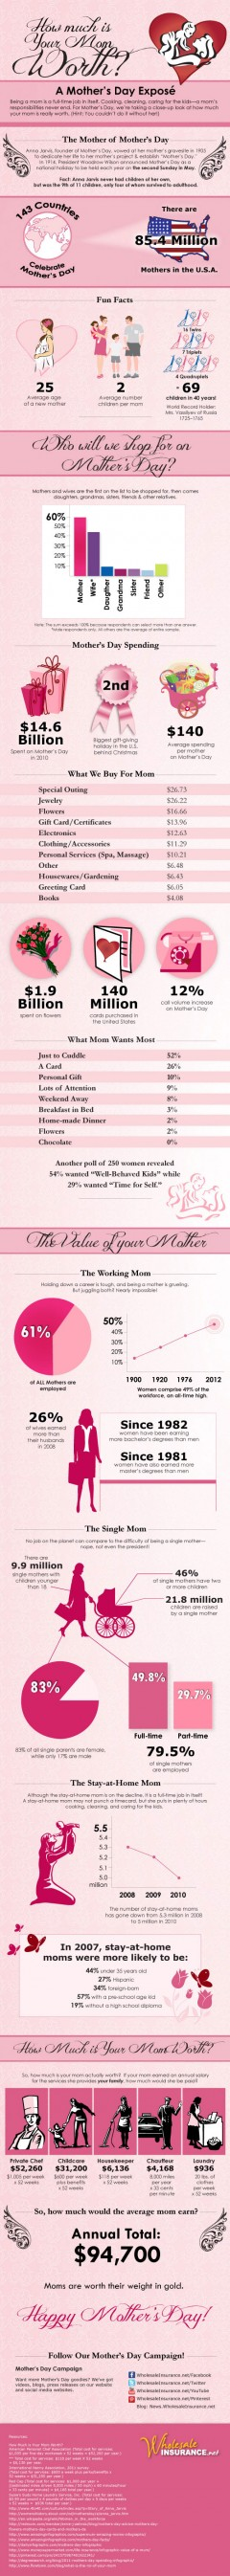 Infographic - How much is your mom worth?